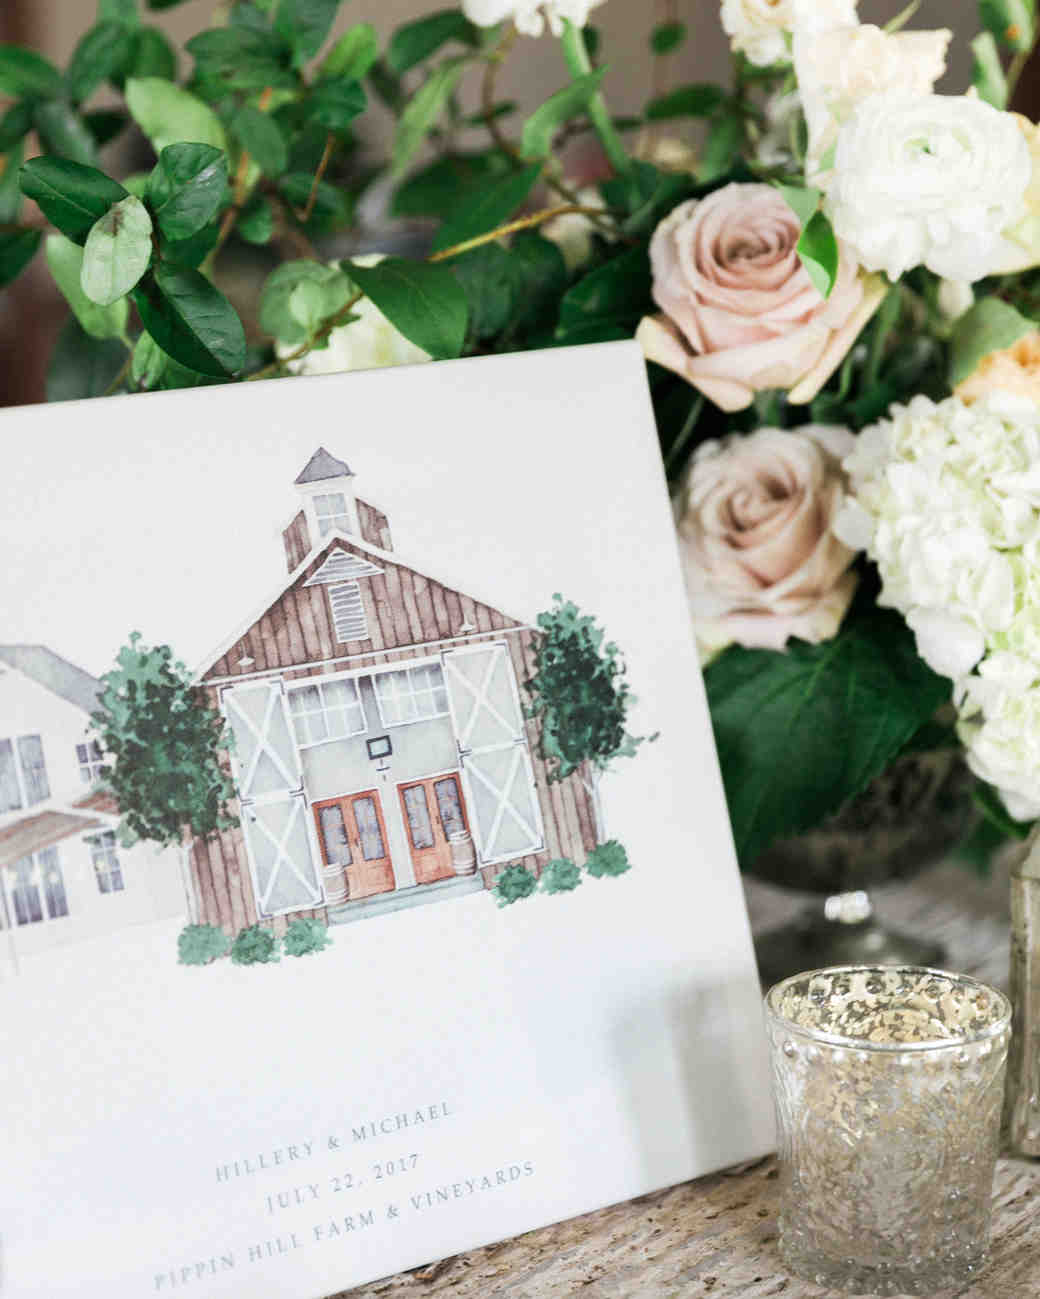 wedding illustrated barn venue signage flowers candle